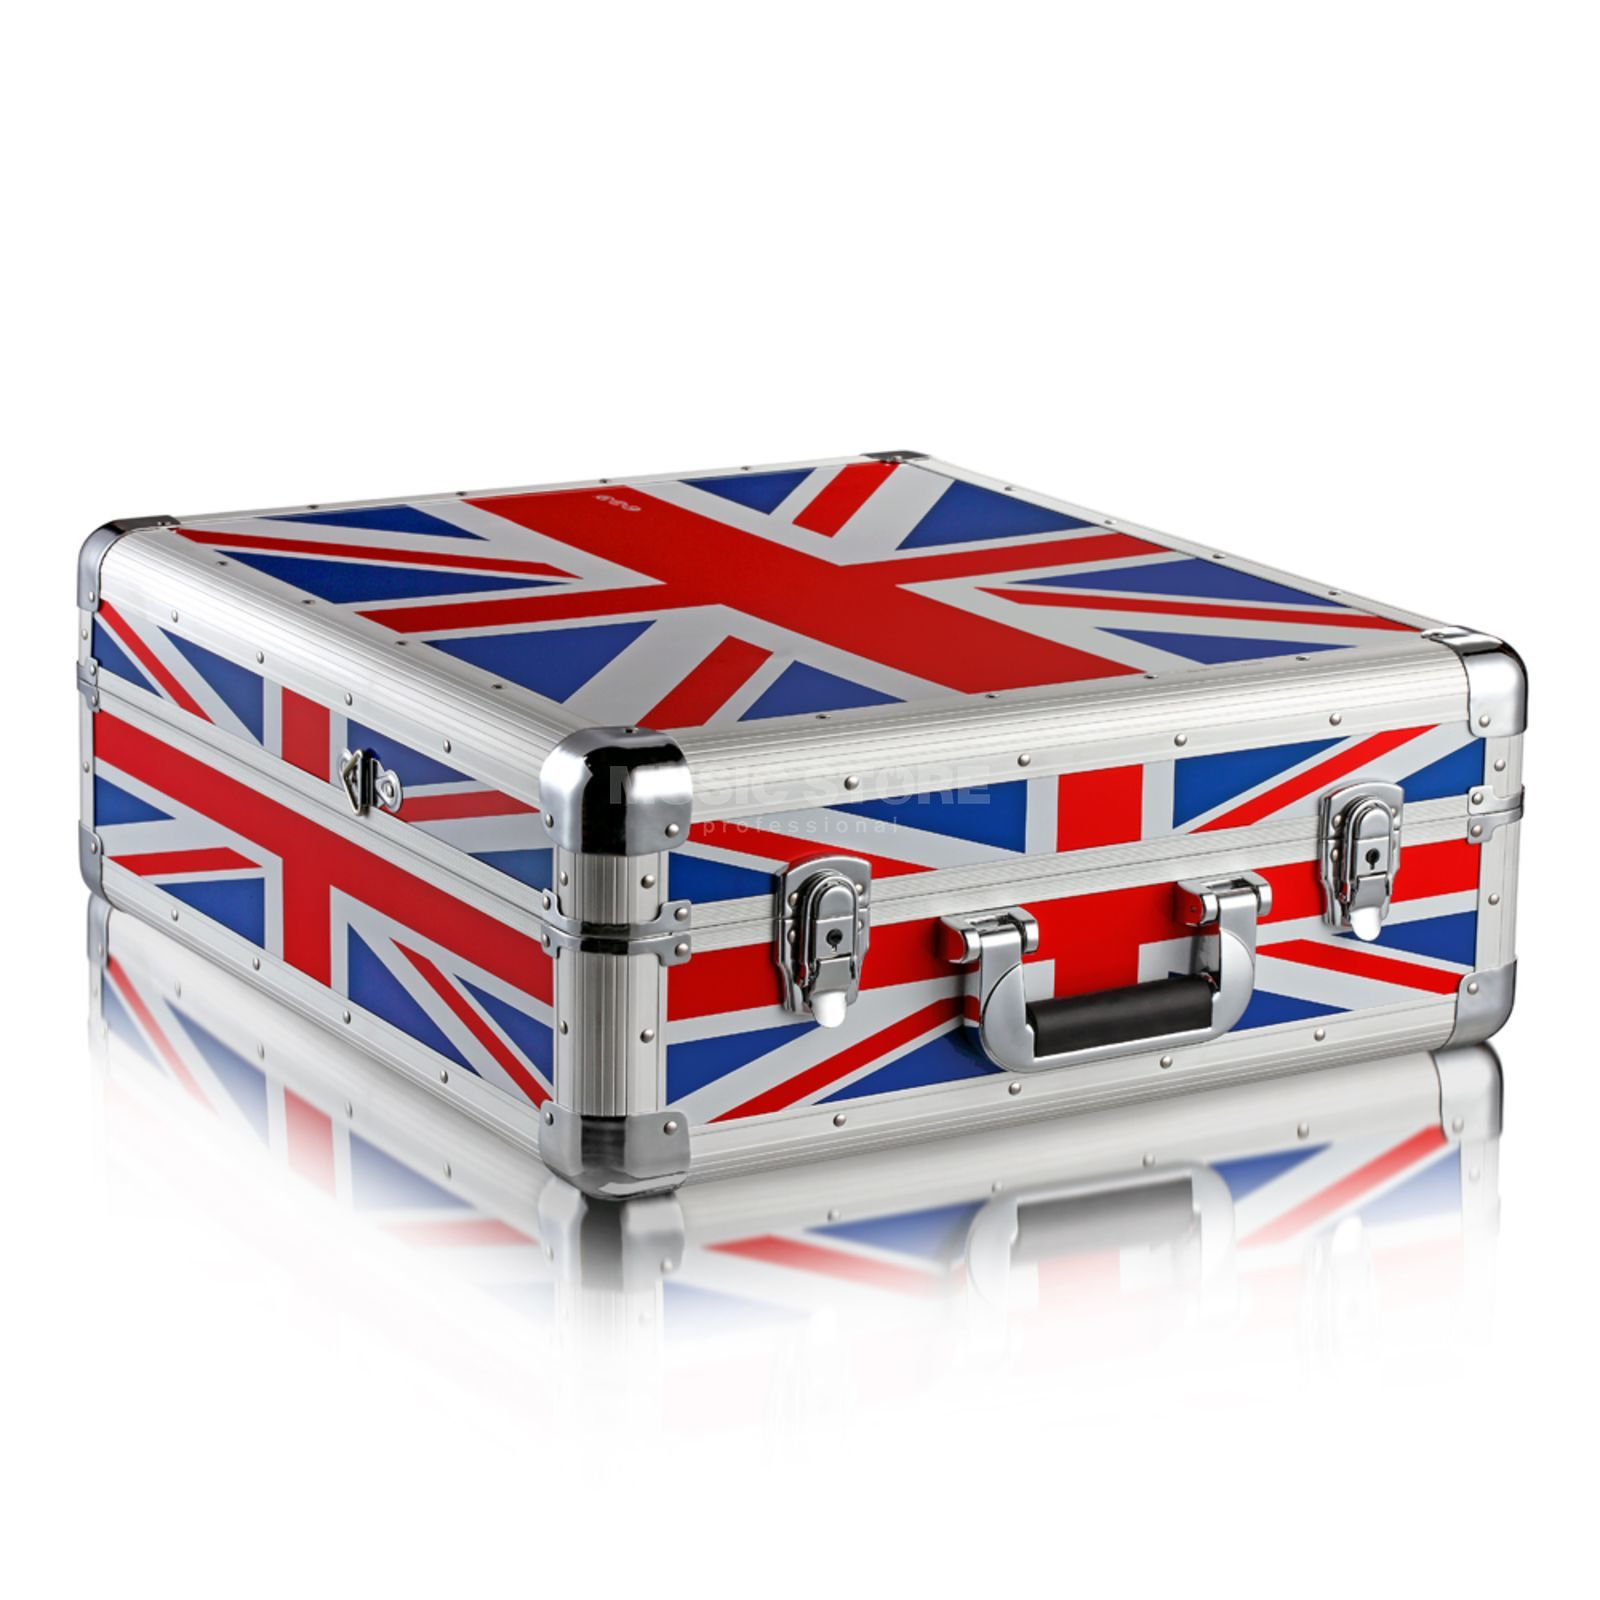 Zomo Case CDJ-13 UK Flag Flightcase for 13 Inch Devices Zdjęcie produktu